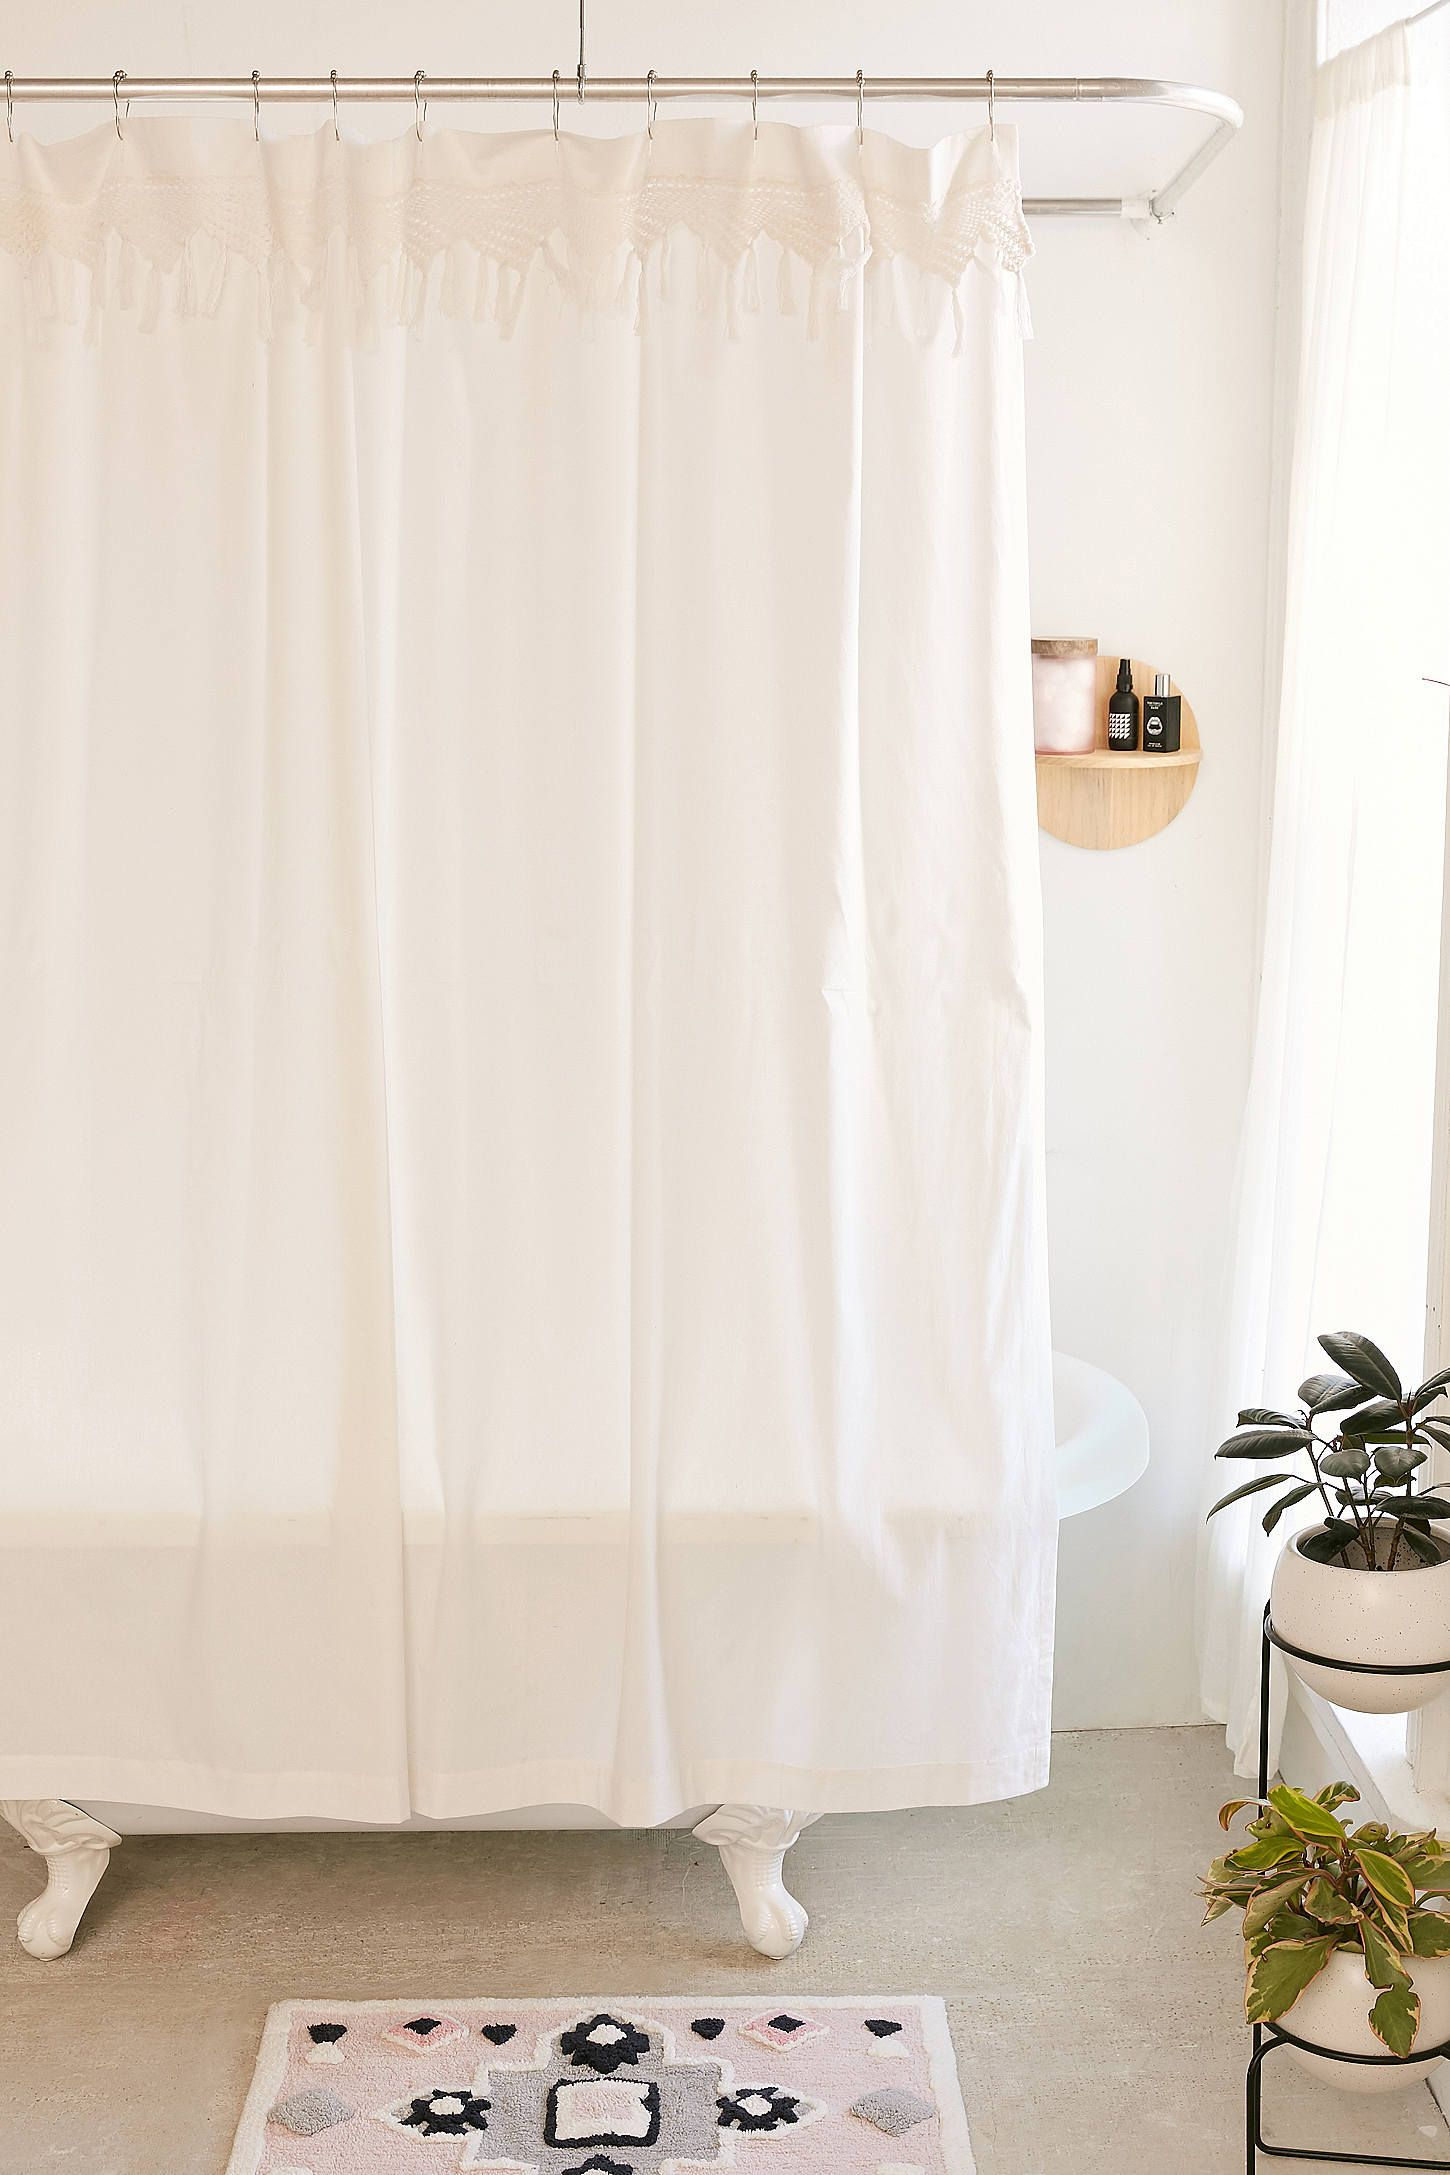 Shower Curtain Liner Curtains Bathroom Curtains Do It Yourself